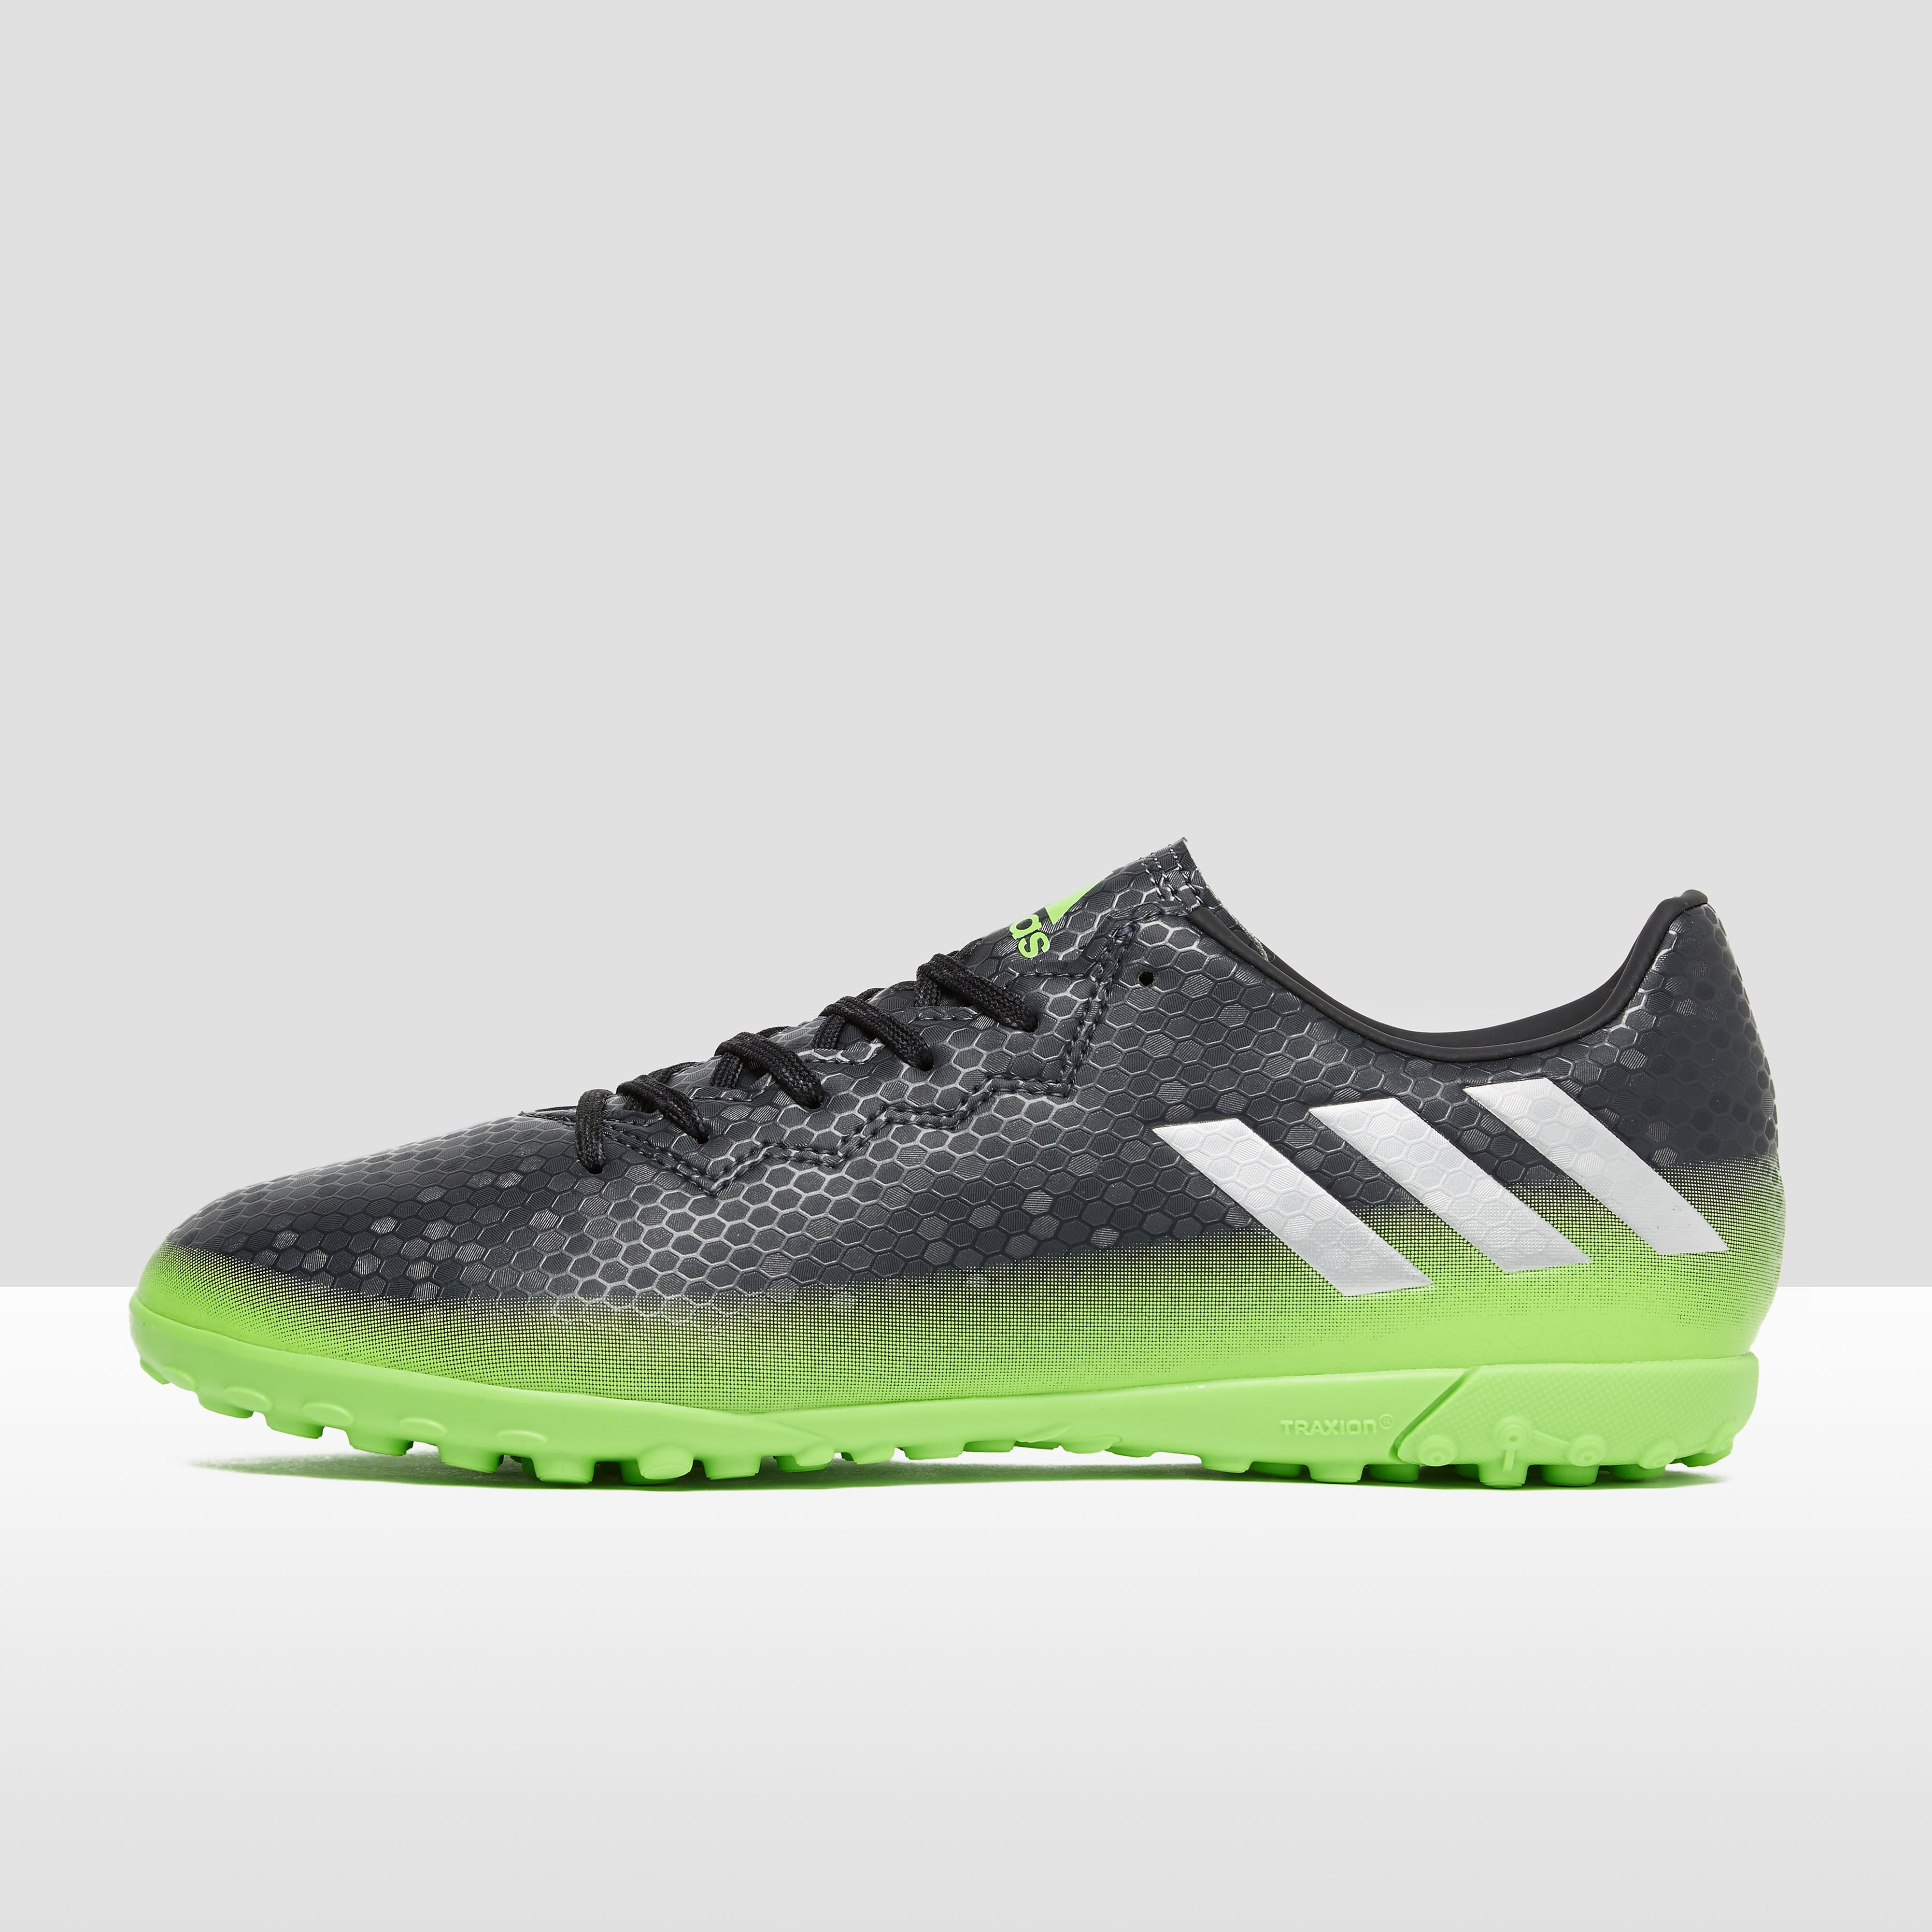 adidas Space Dust Messi 16.4 Turf